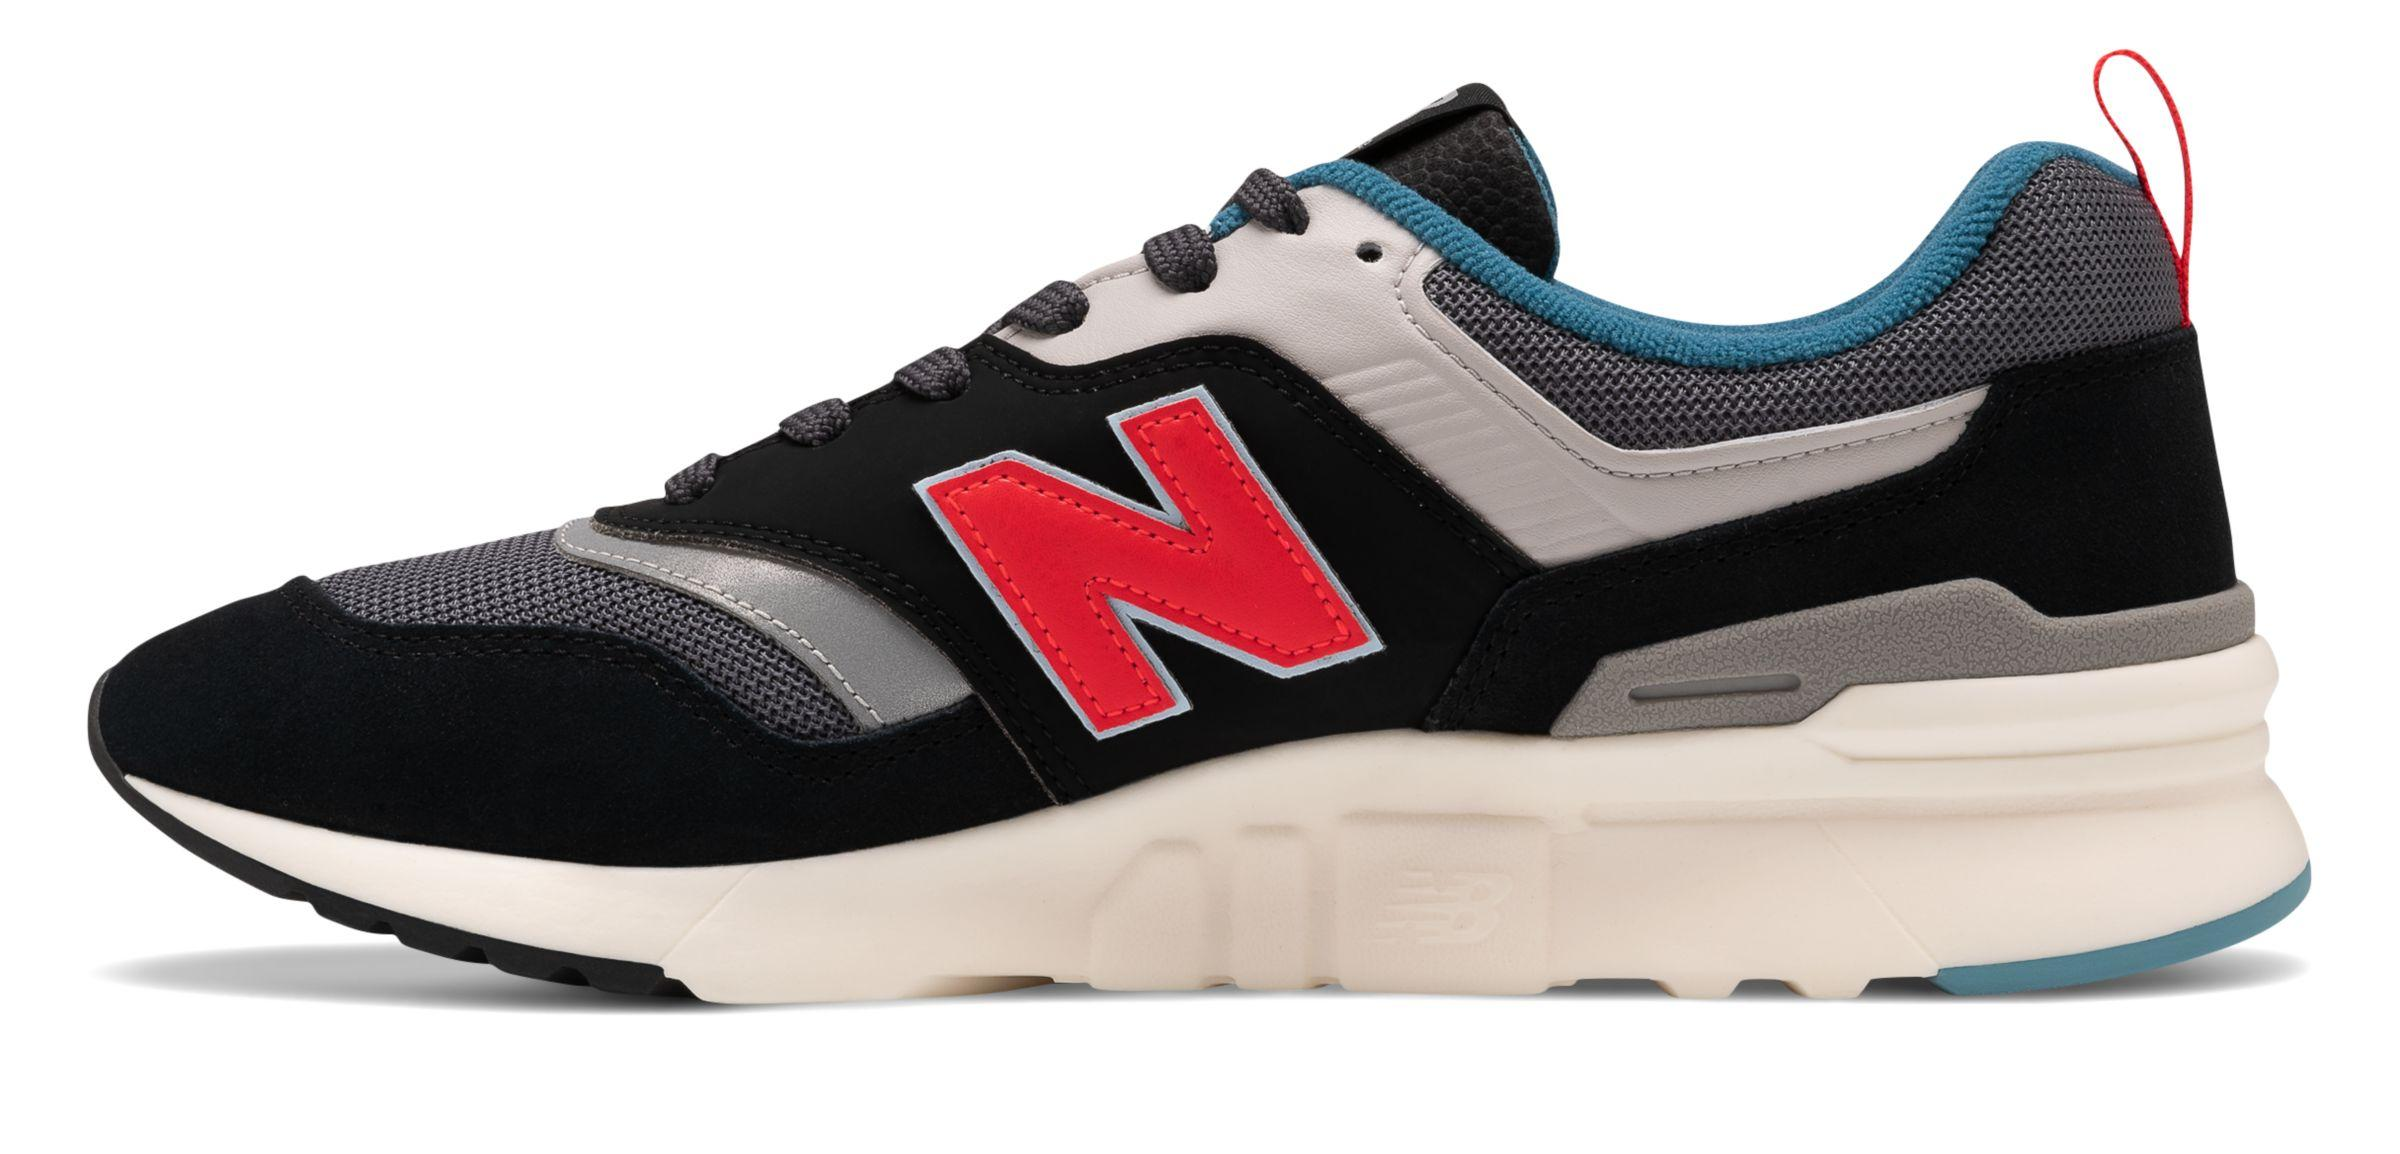 New Balance Suede 997h for Men - Lyst